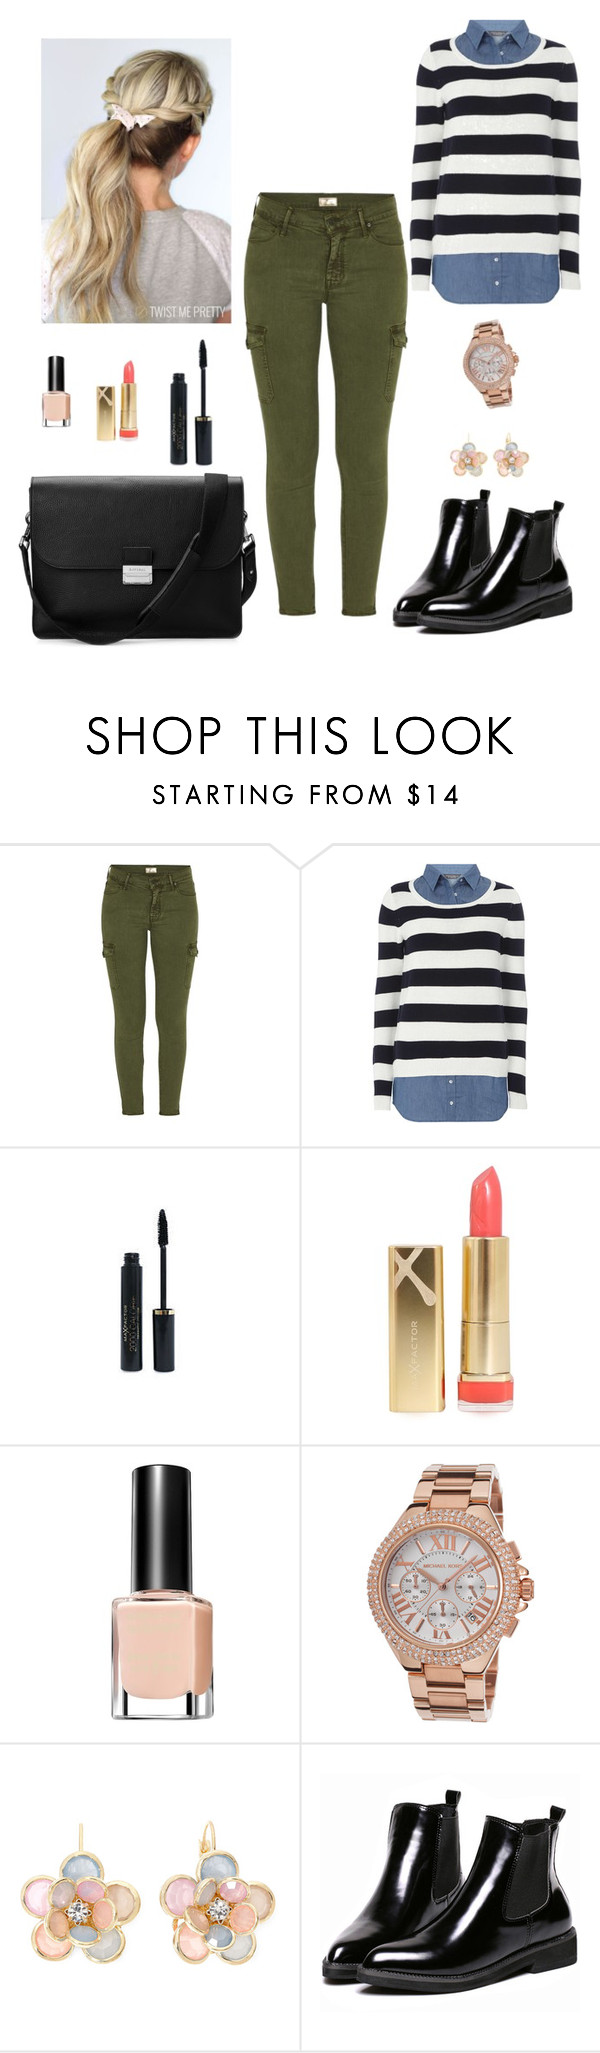 """Bez naslova #915"" by stypayhorlikson1d ❤ liked on Polyvore featuring Mother, Dorothy Perkins, Max Factor, Michael Kors, Mixit and Aspinal of London"